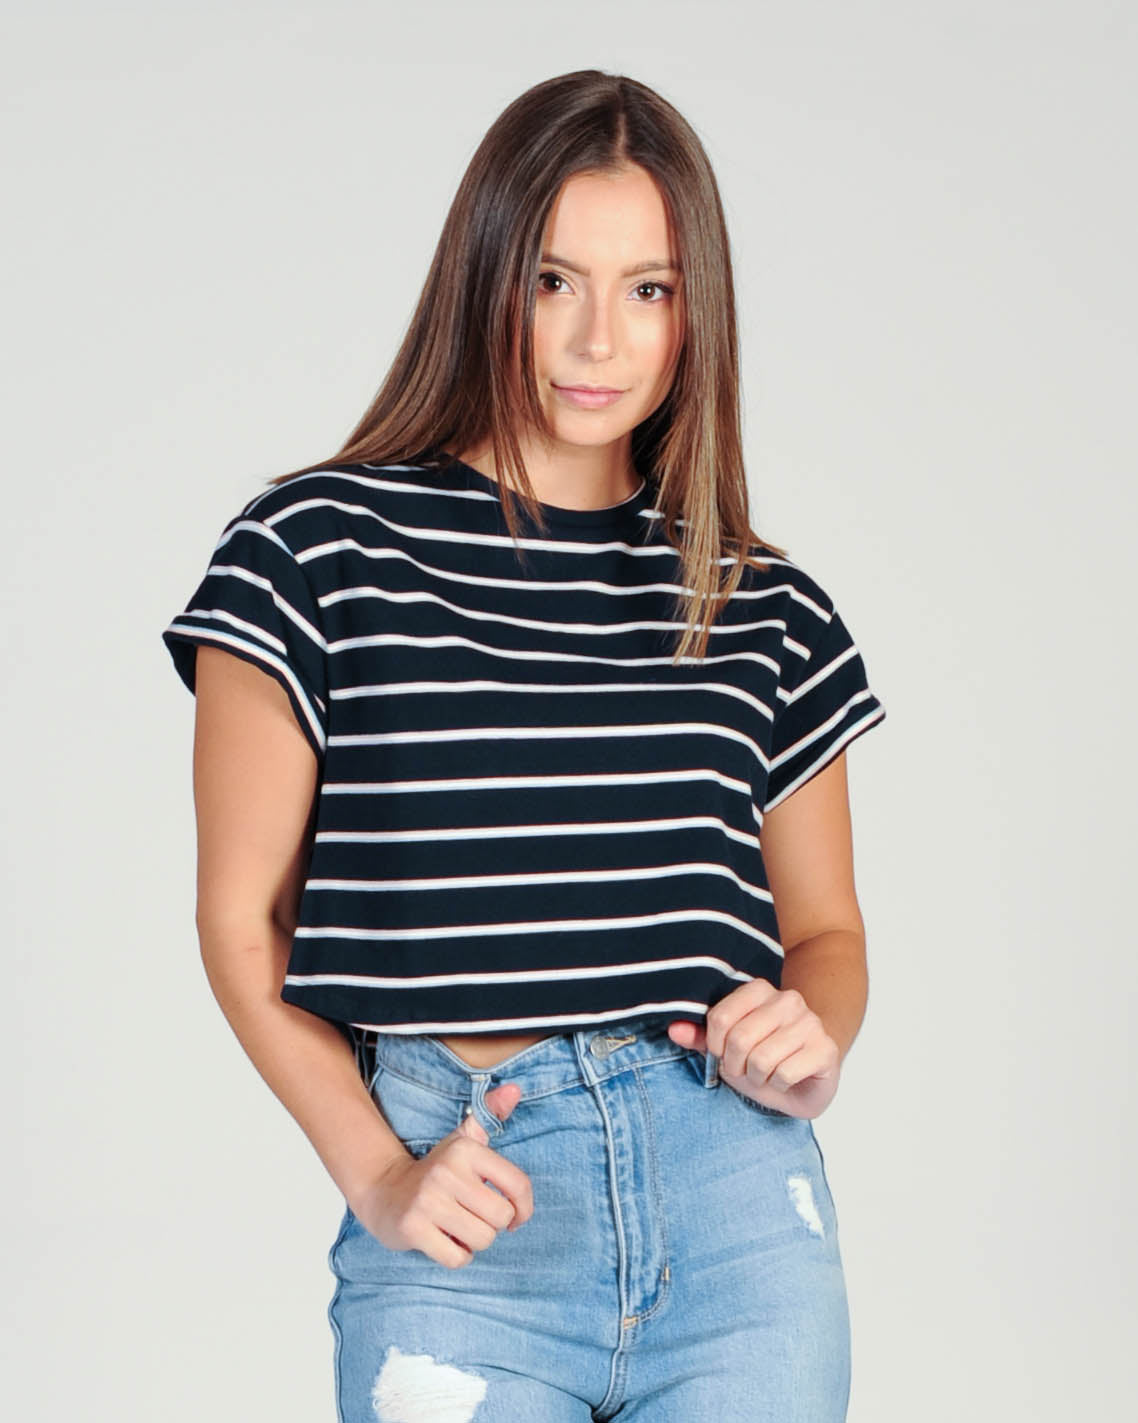 Silent Theory Bite The Bullet Crop Stripe Top - Nav/Whi/Pin